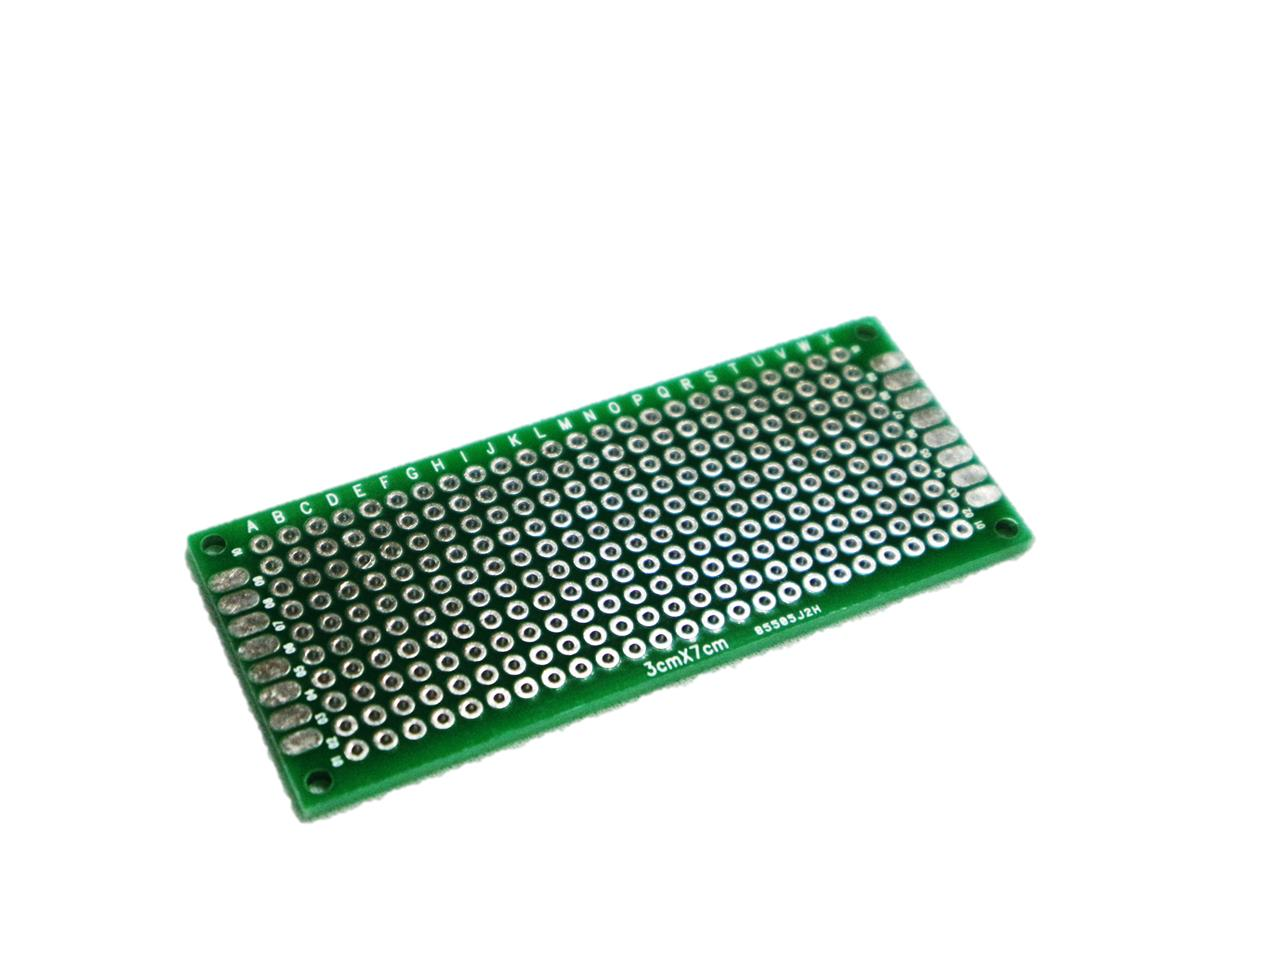 Project Board 3x7cm Double Sided Pcb End 6 14 2019 415 Pm Fiberglass Circuit